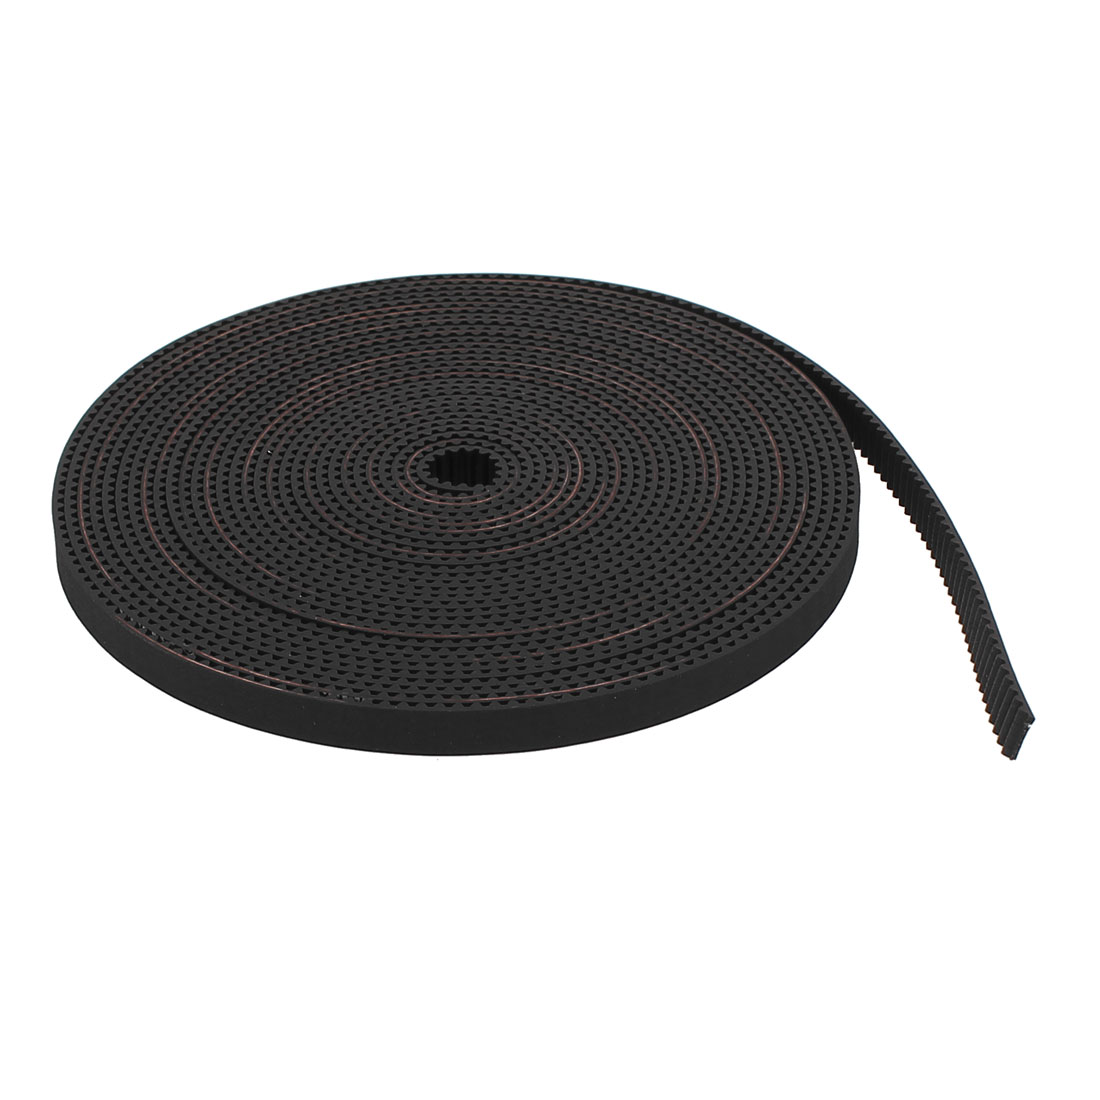 3D Printer S2M 6mm Width 2mm Pitch Rubber Open Loop Precision Timing Belt 5M